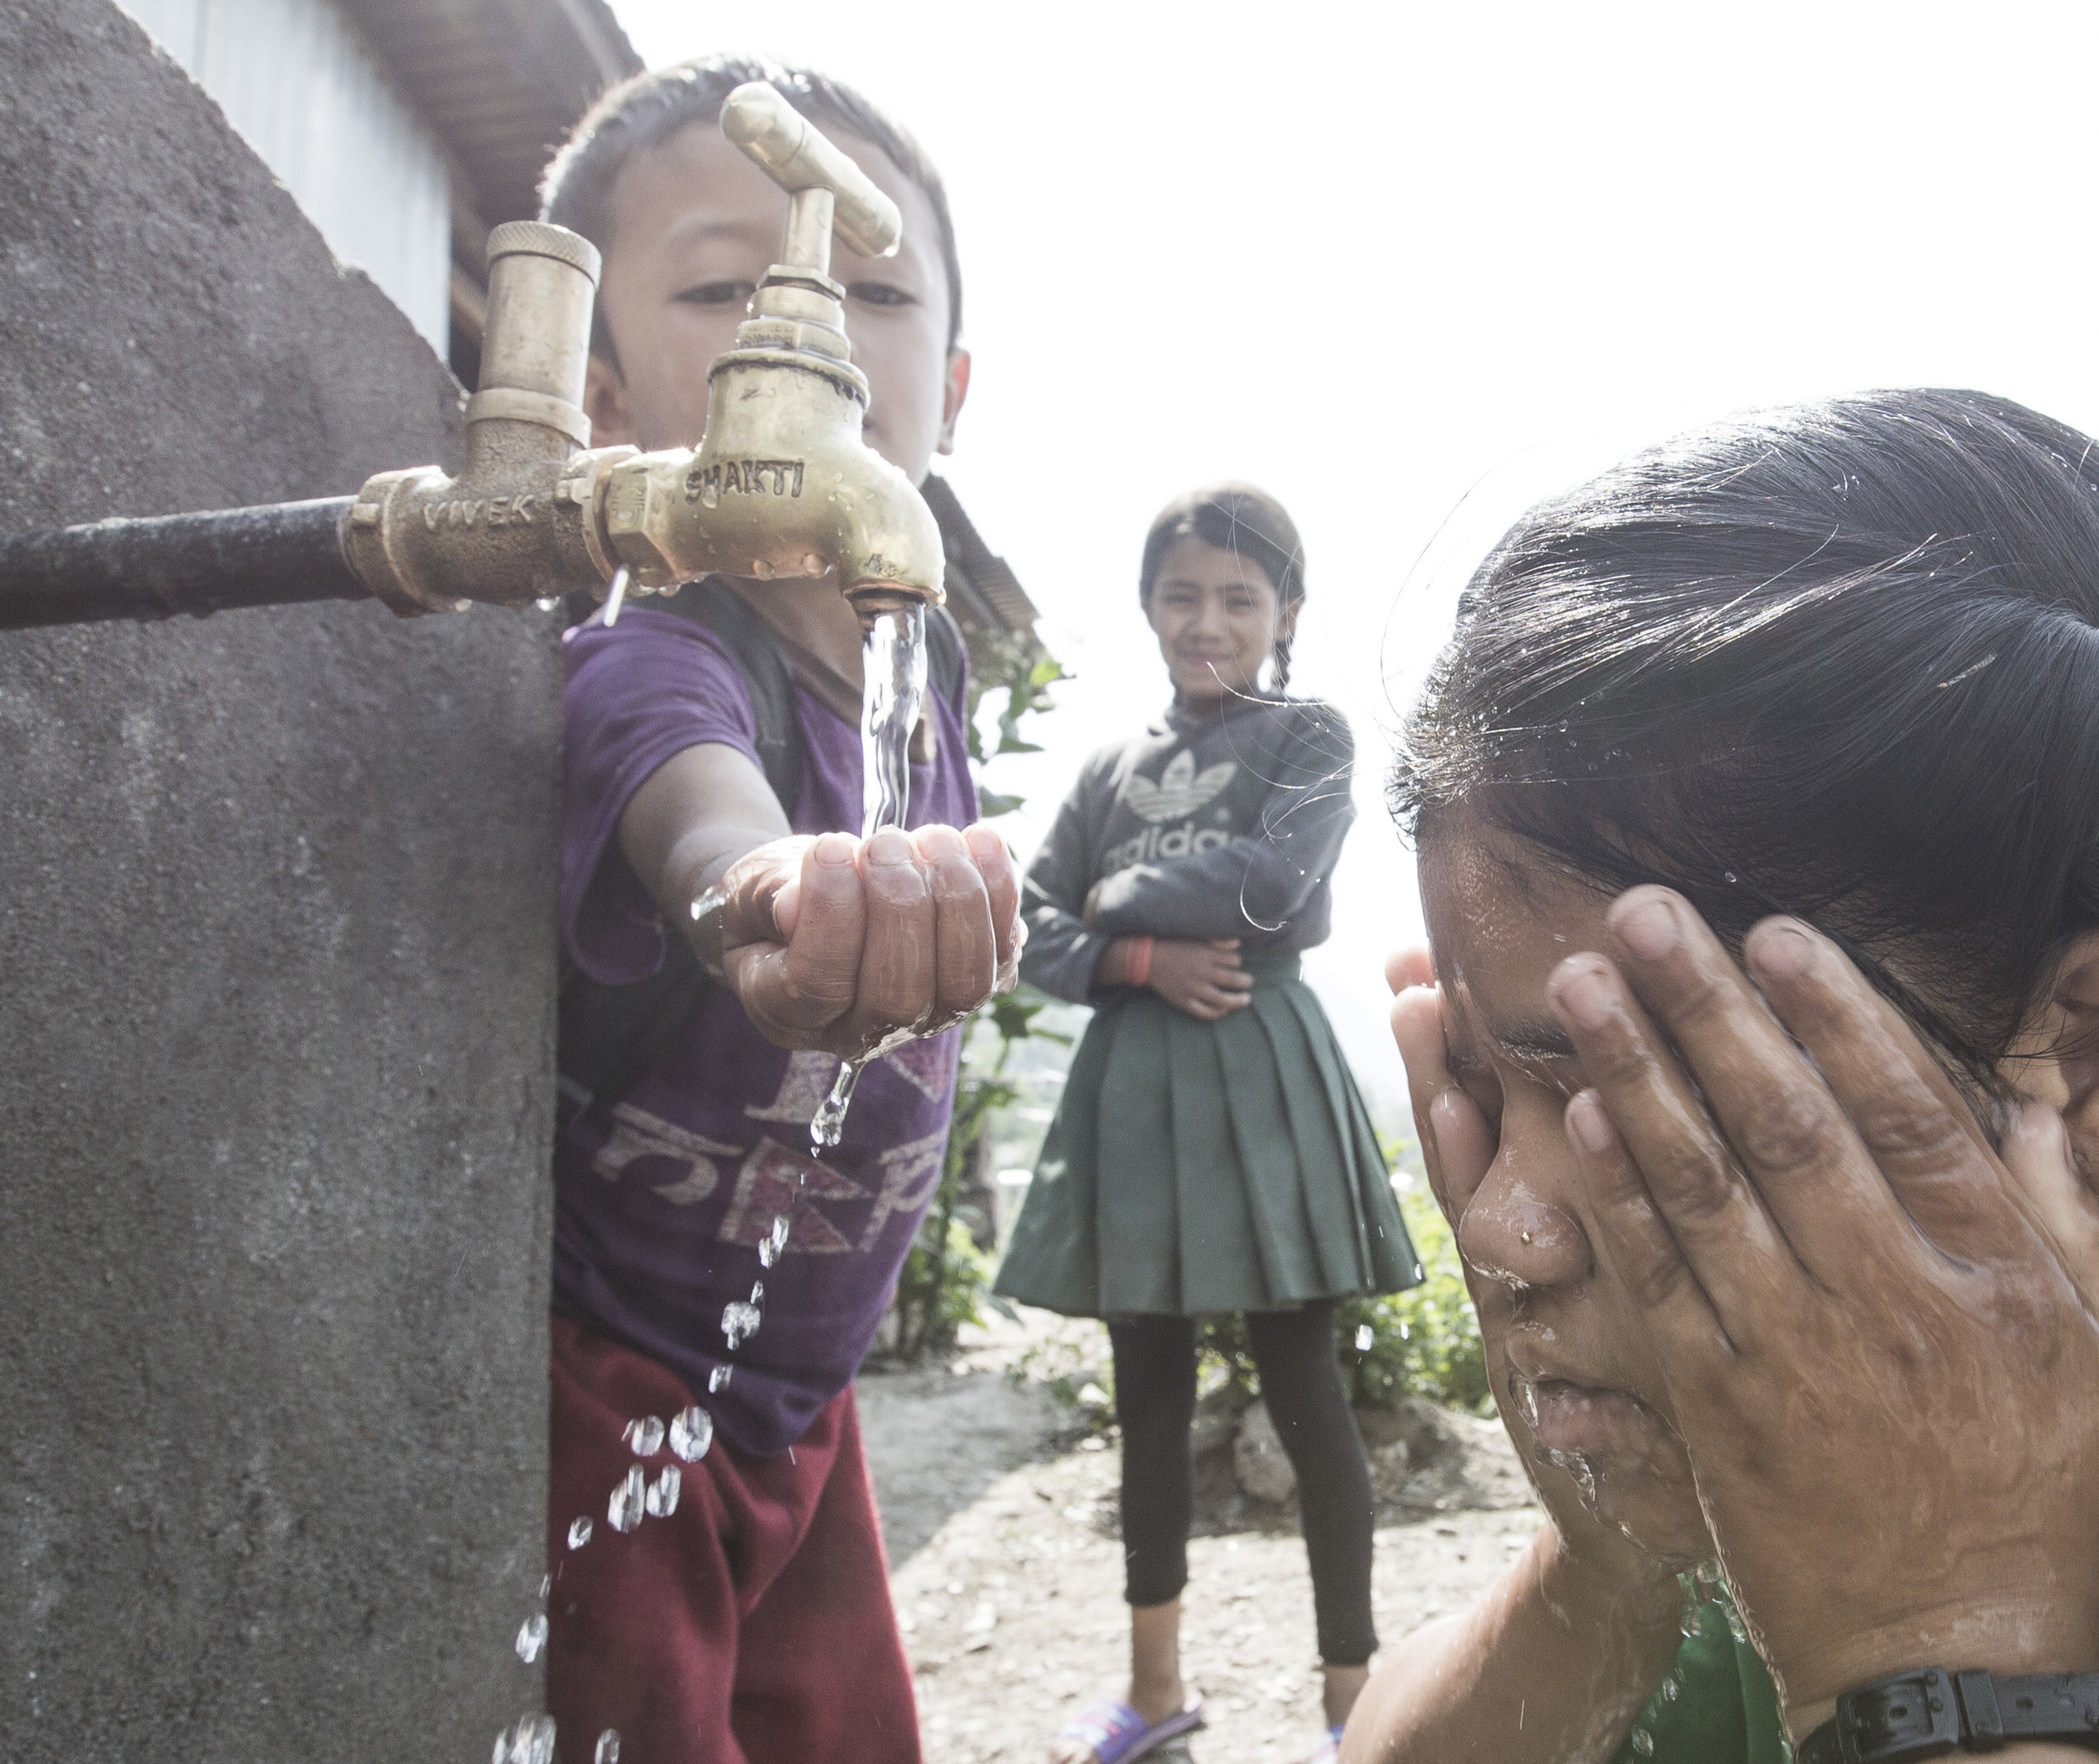 Children enjoy fresh water from the tap after the community completed a water infrastructure project.